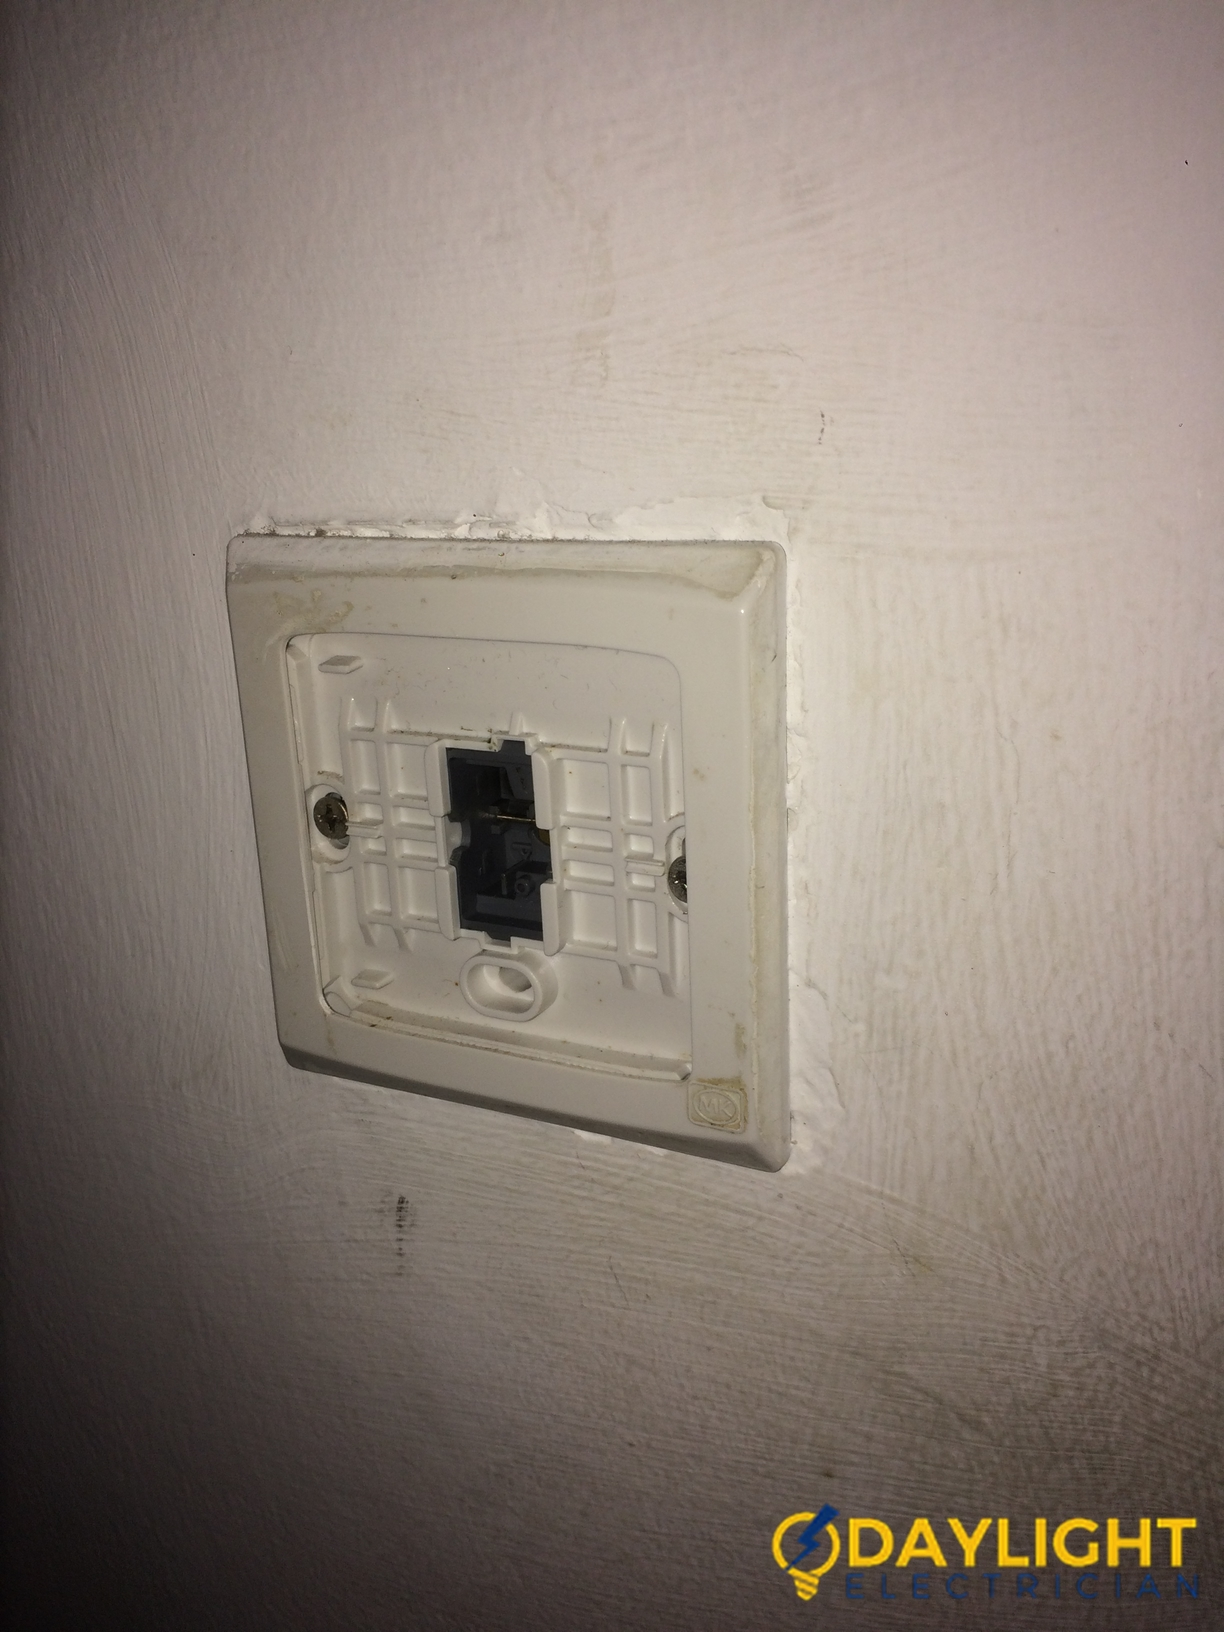 Light-Switch-Repair-Electrician-Singapore-Commercial-Jurong-East-2